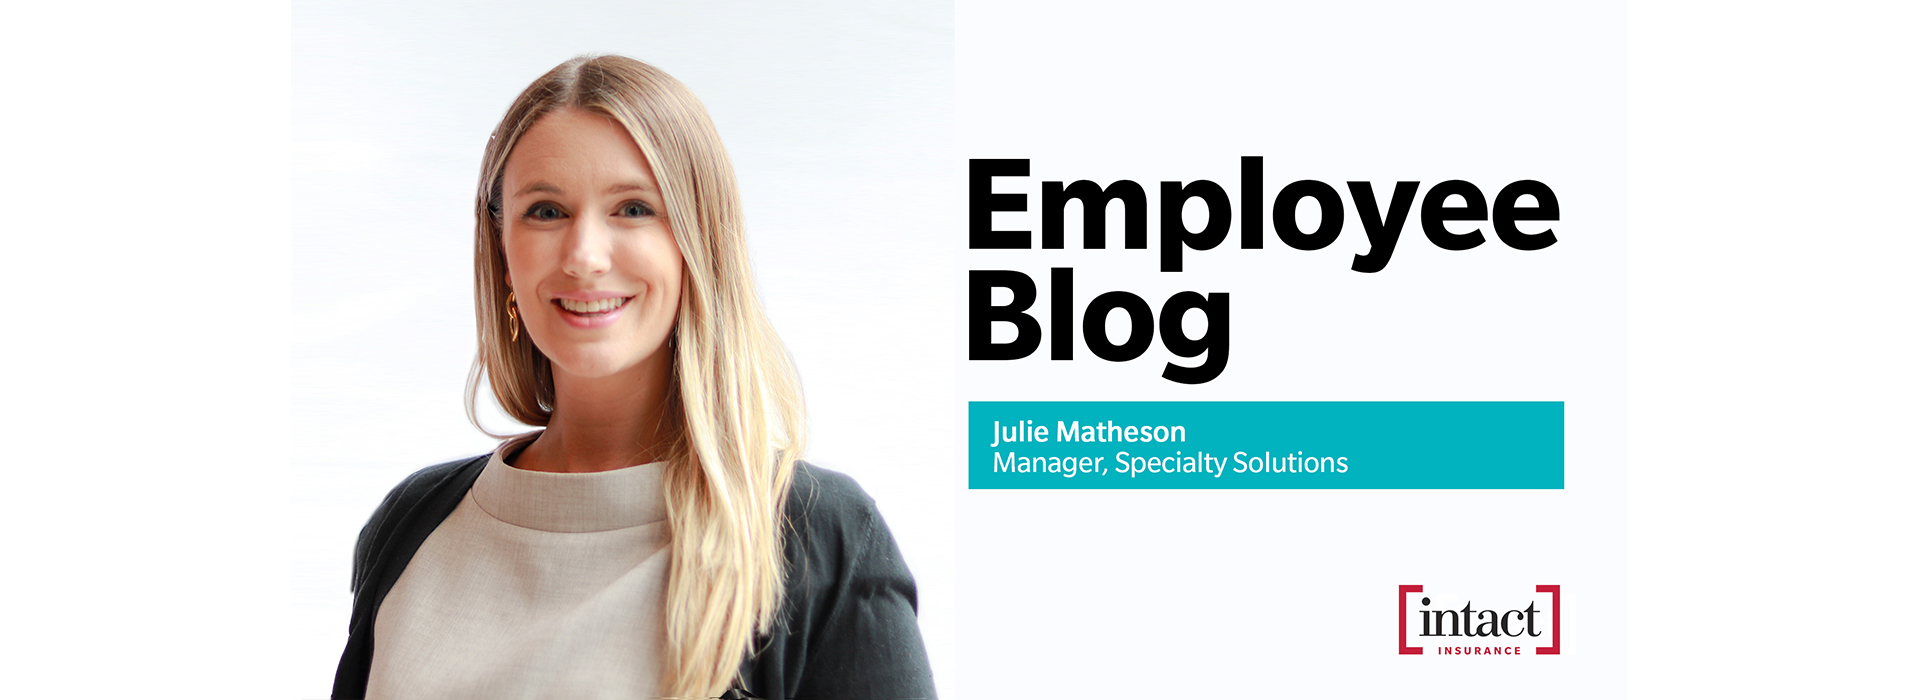 Employee Blog - Julie Matheson - Specialty Solutions